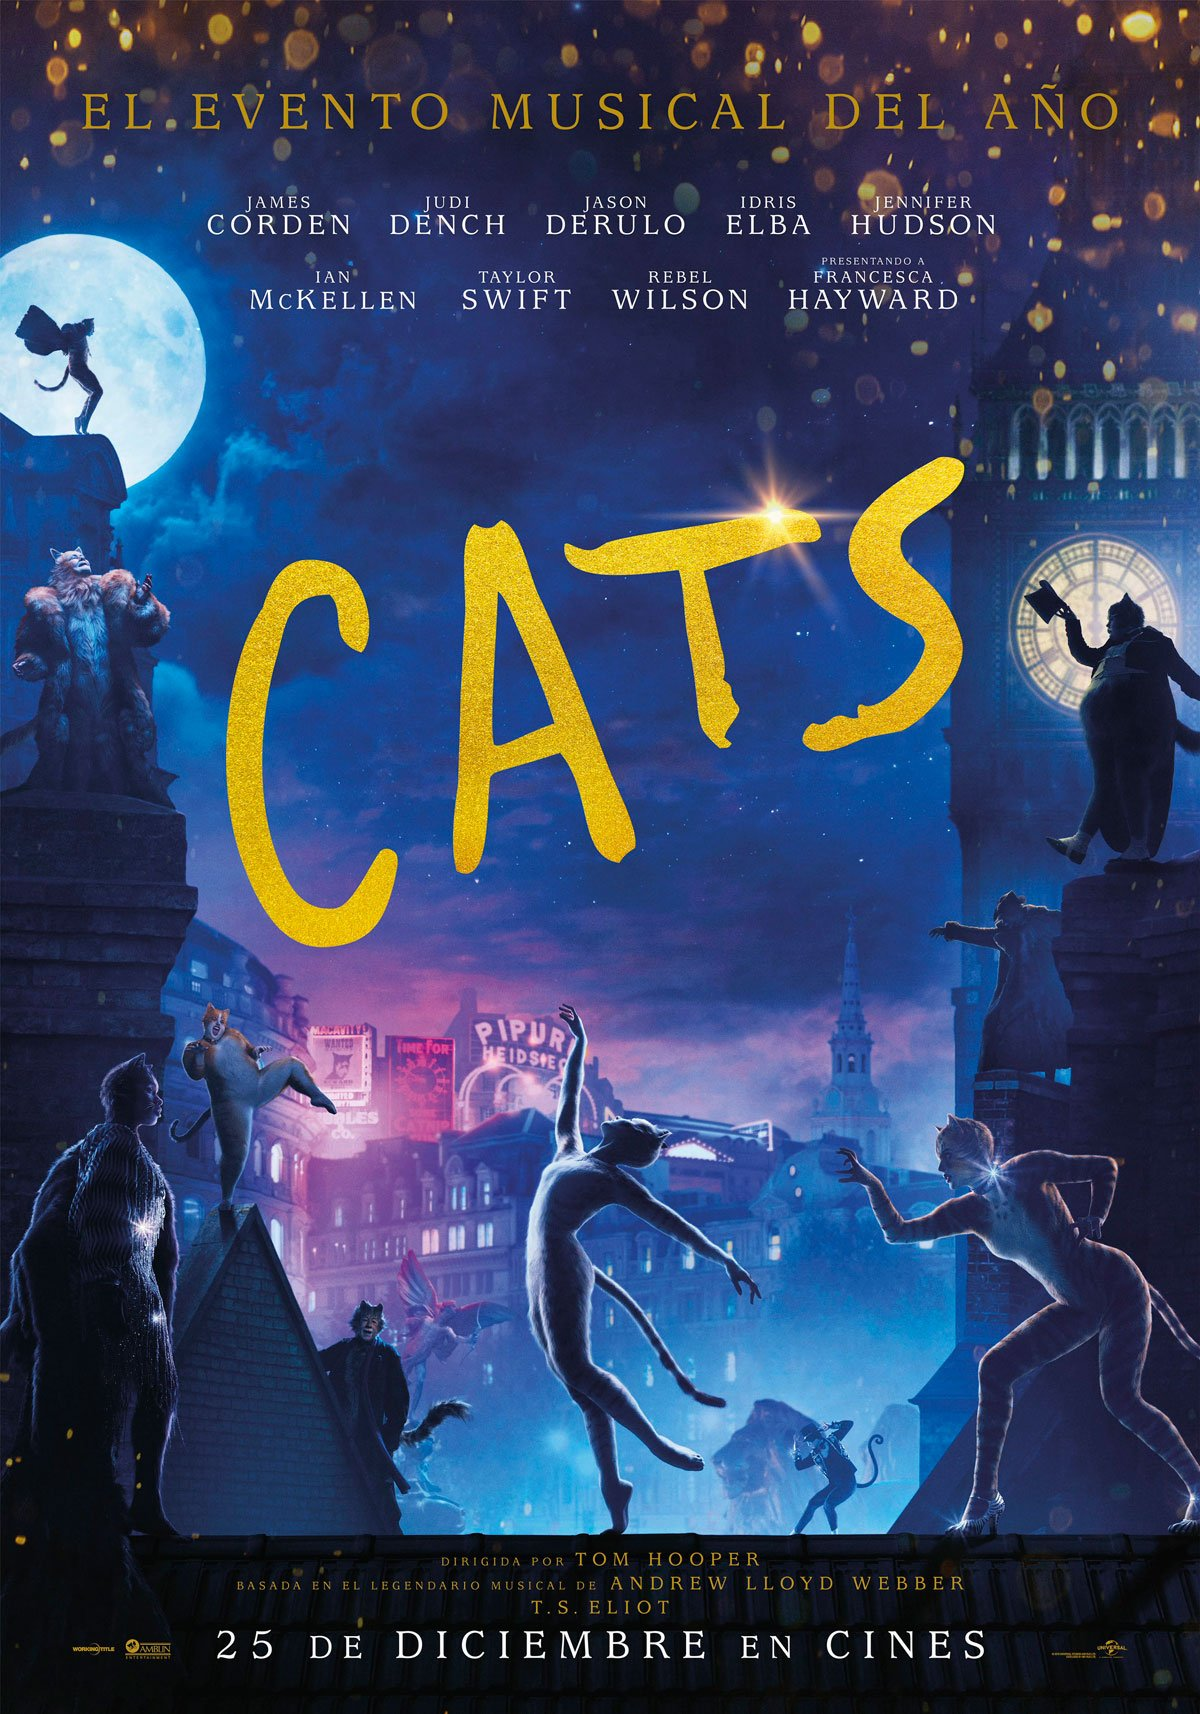 'Cats'